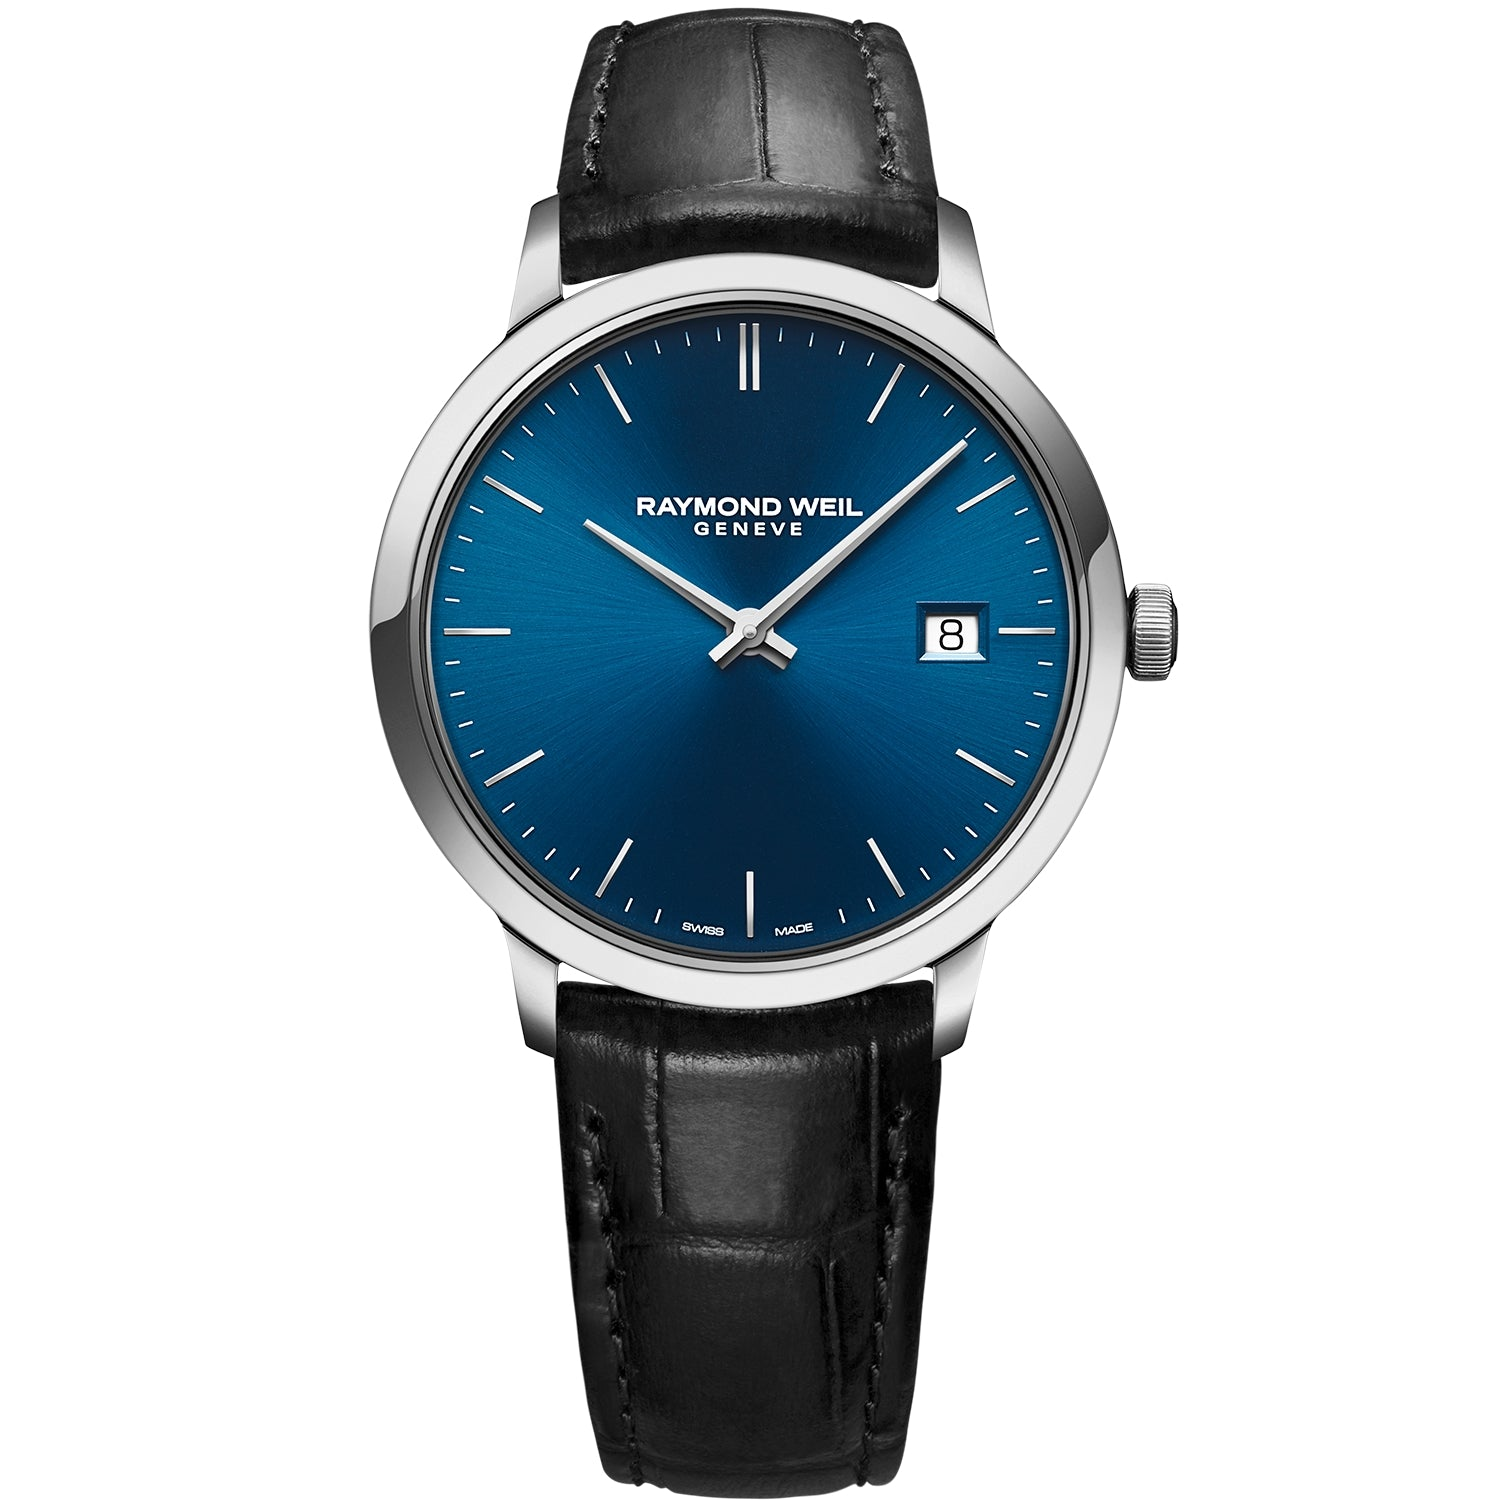 Toccata Men's Classic Blue Dial Quartz Watch 5485-STC-50001